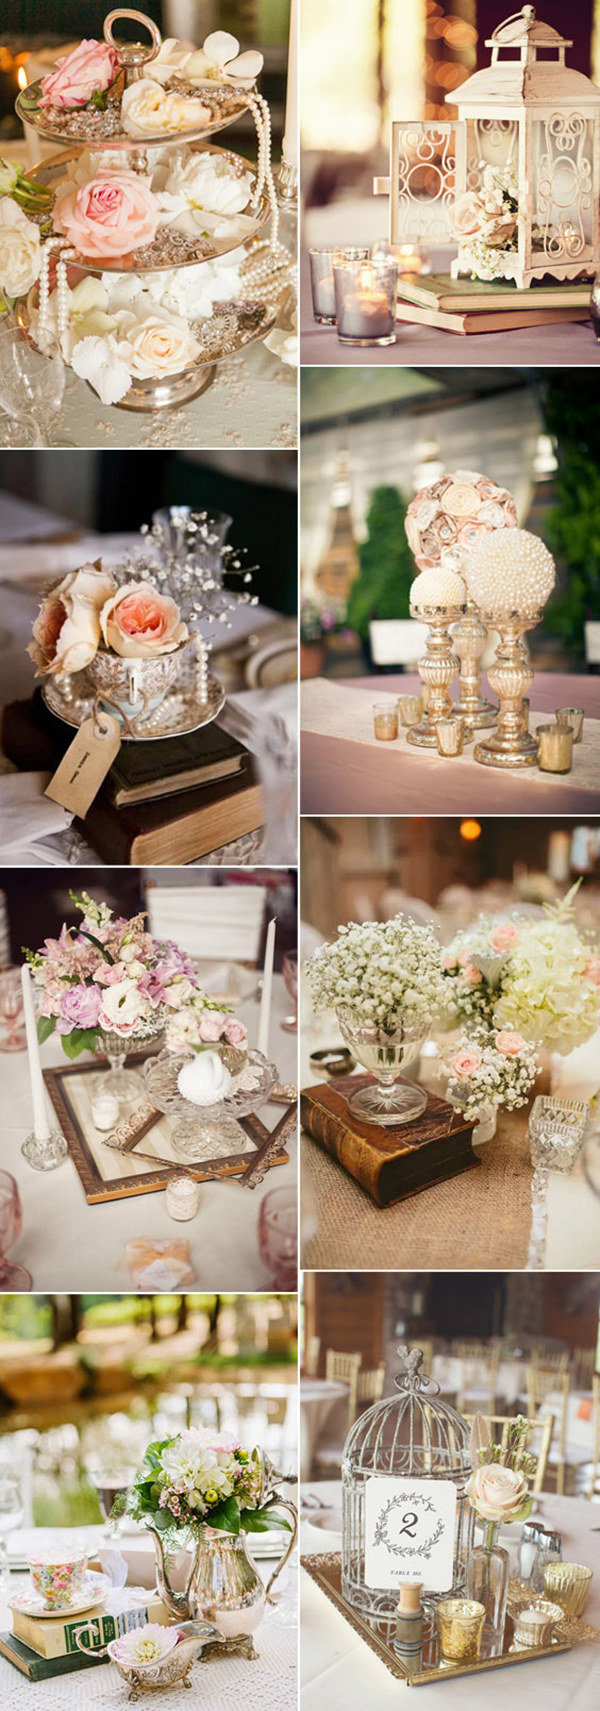 Floral Centerpiece Trends : Wedding trends archives oh best day ever